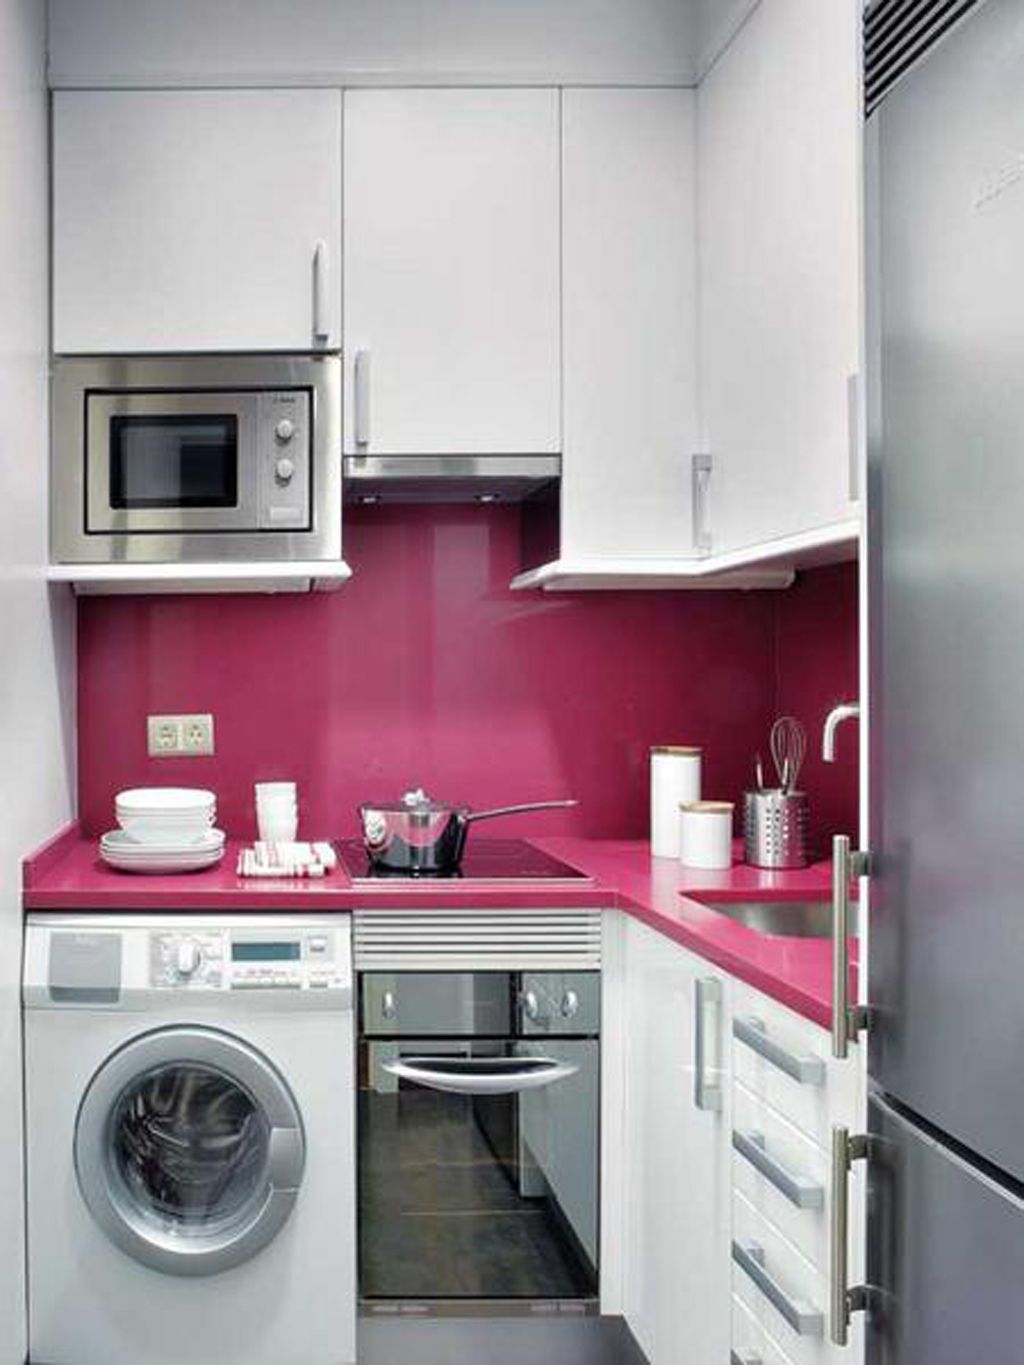 Space Decorating Ideas for small kitchens | ... May 7, 2013 at 1024 ...